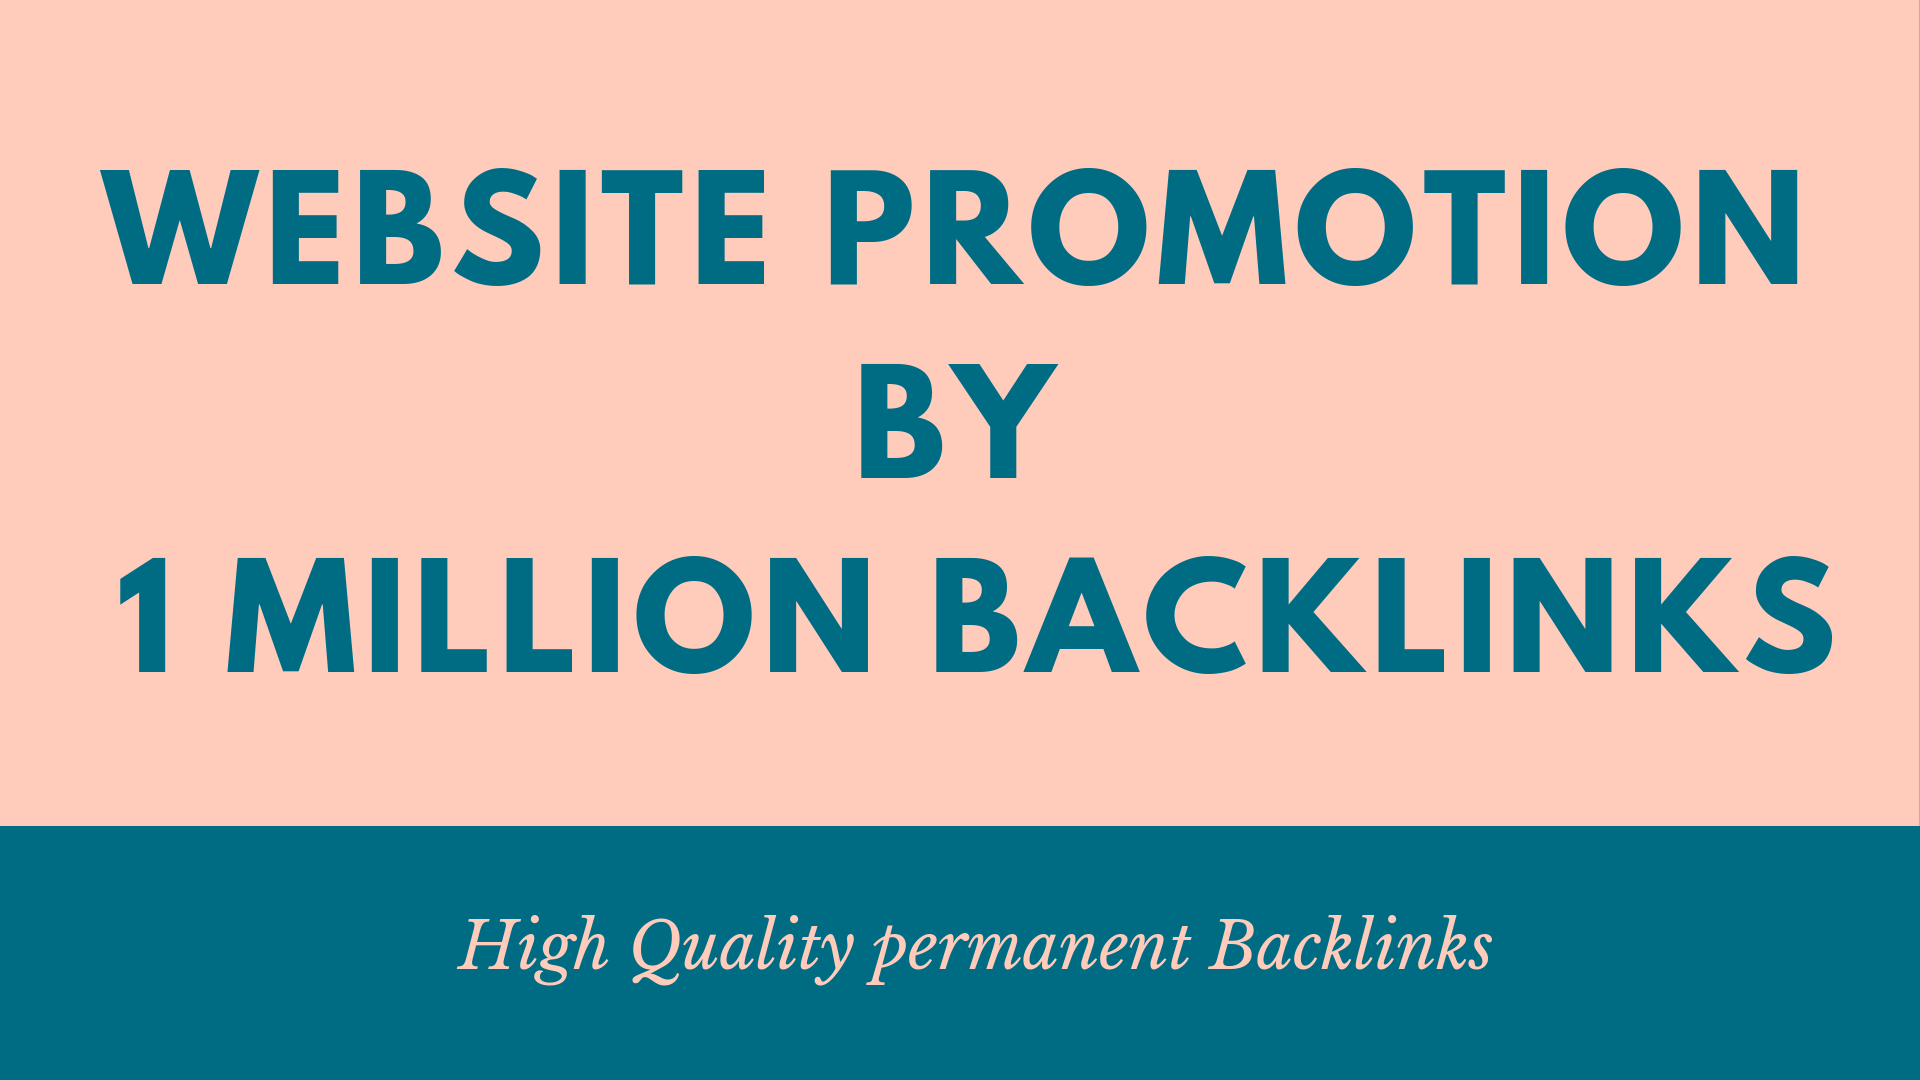 Provide website promotion by 1 million backlinks